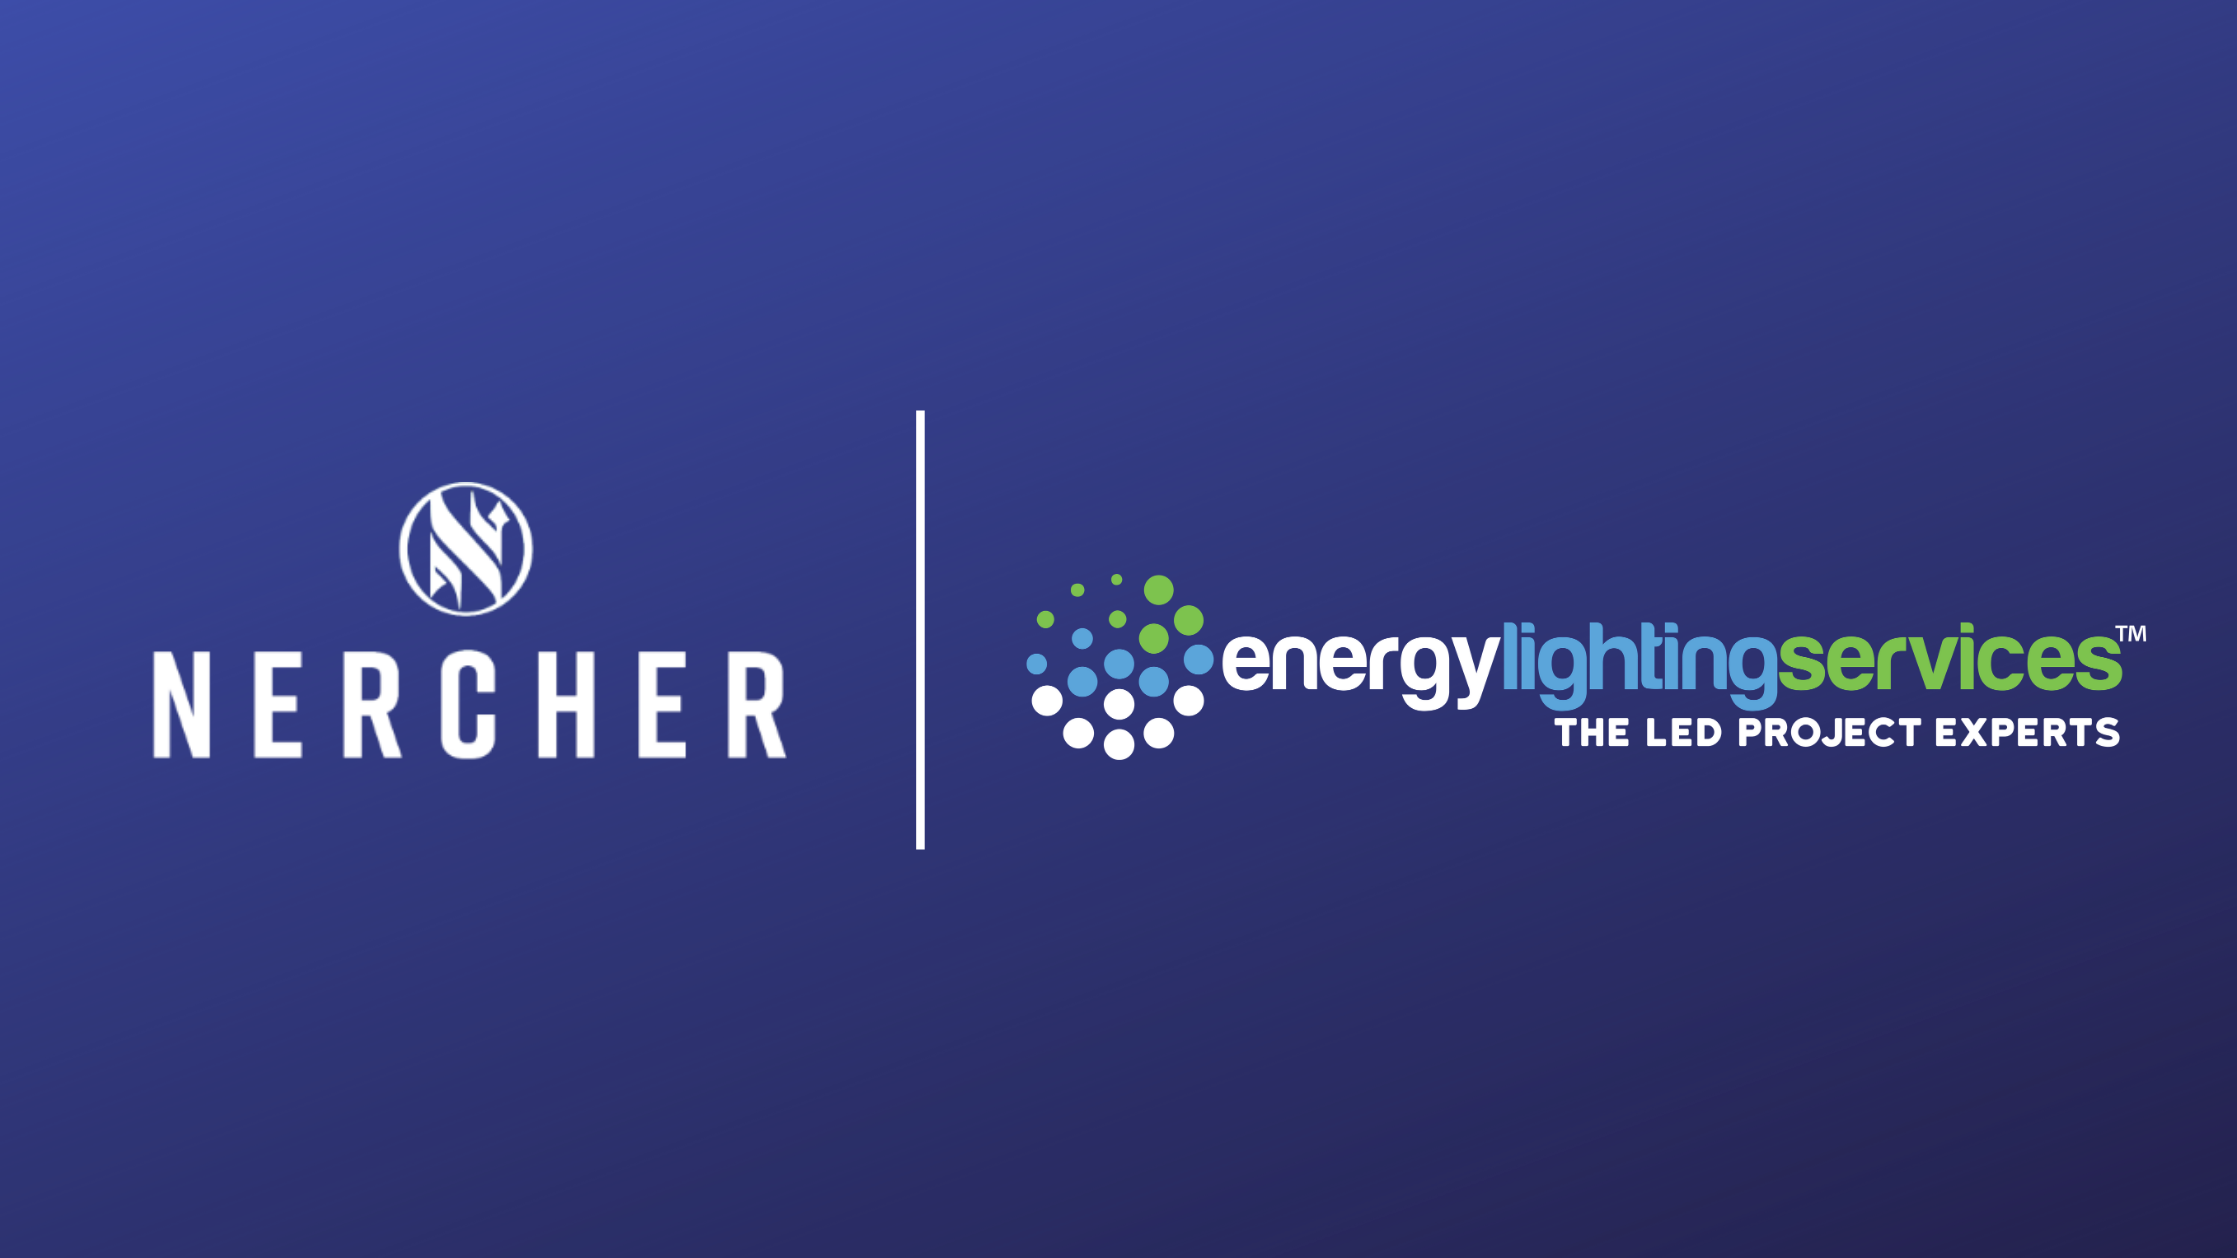 Energy Lighting Services Partners with Nercher360 to Drive Impactful Team Meetings in 2021